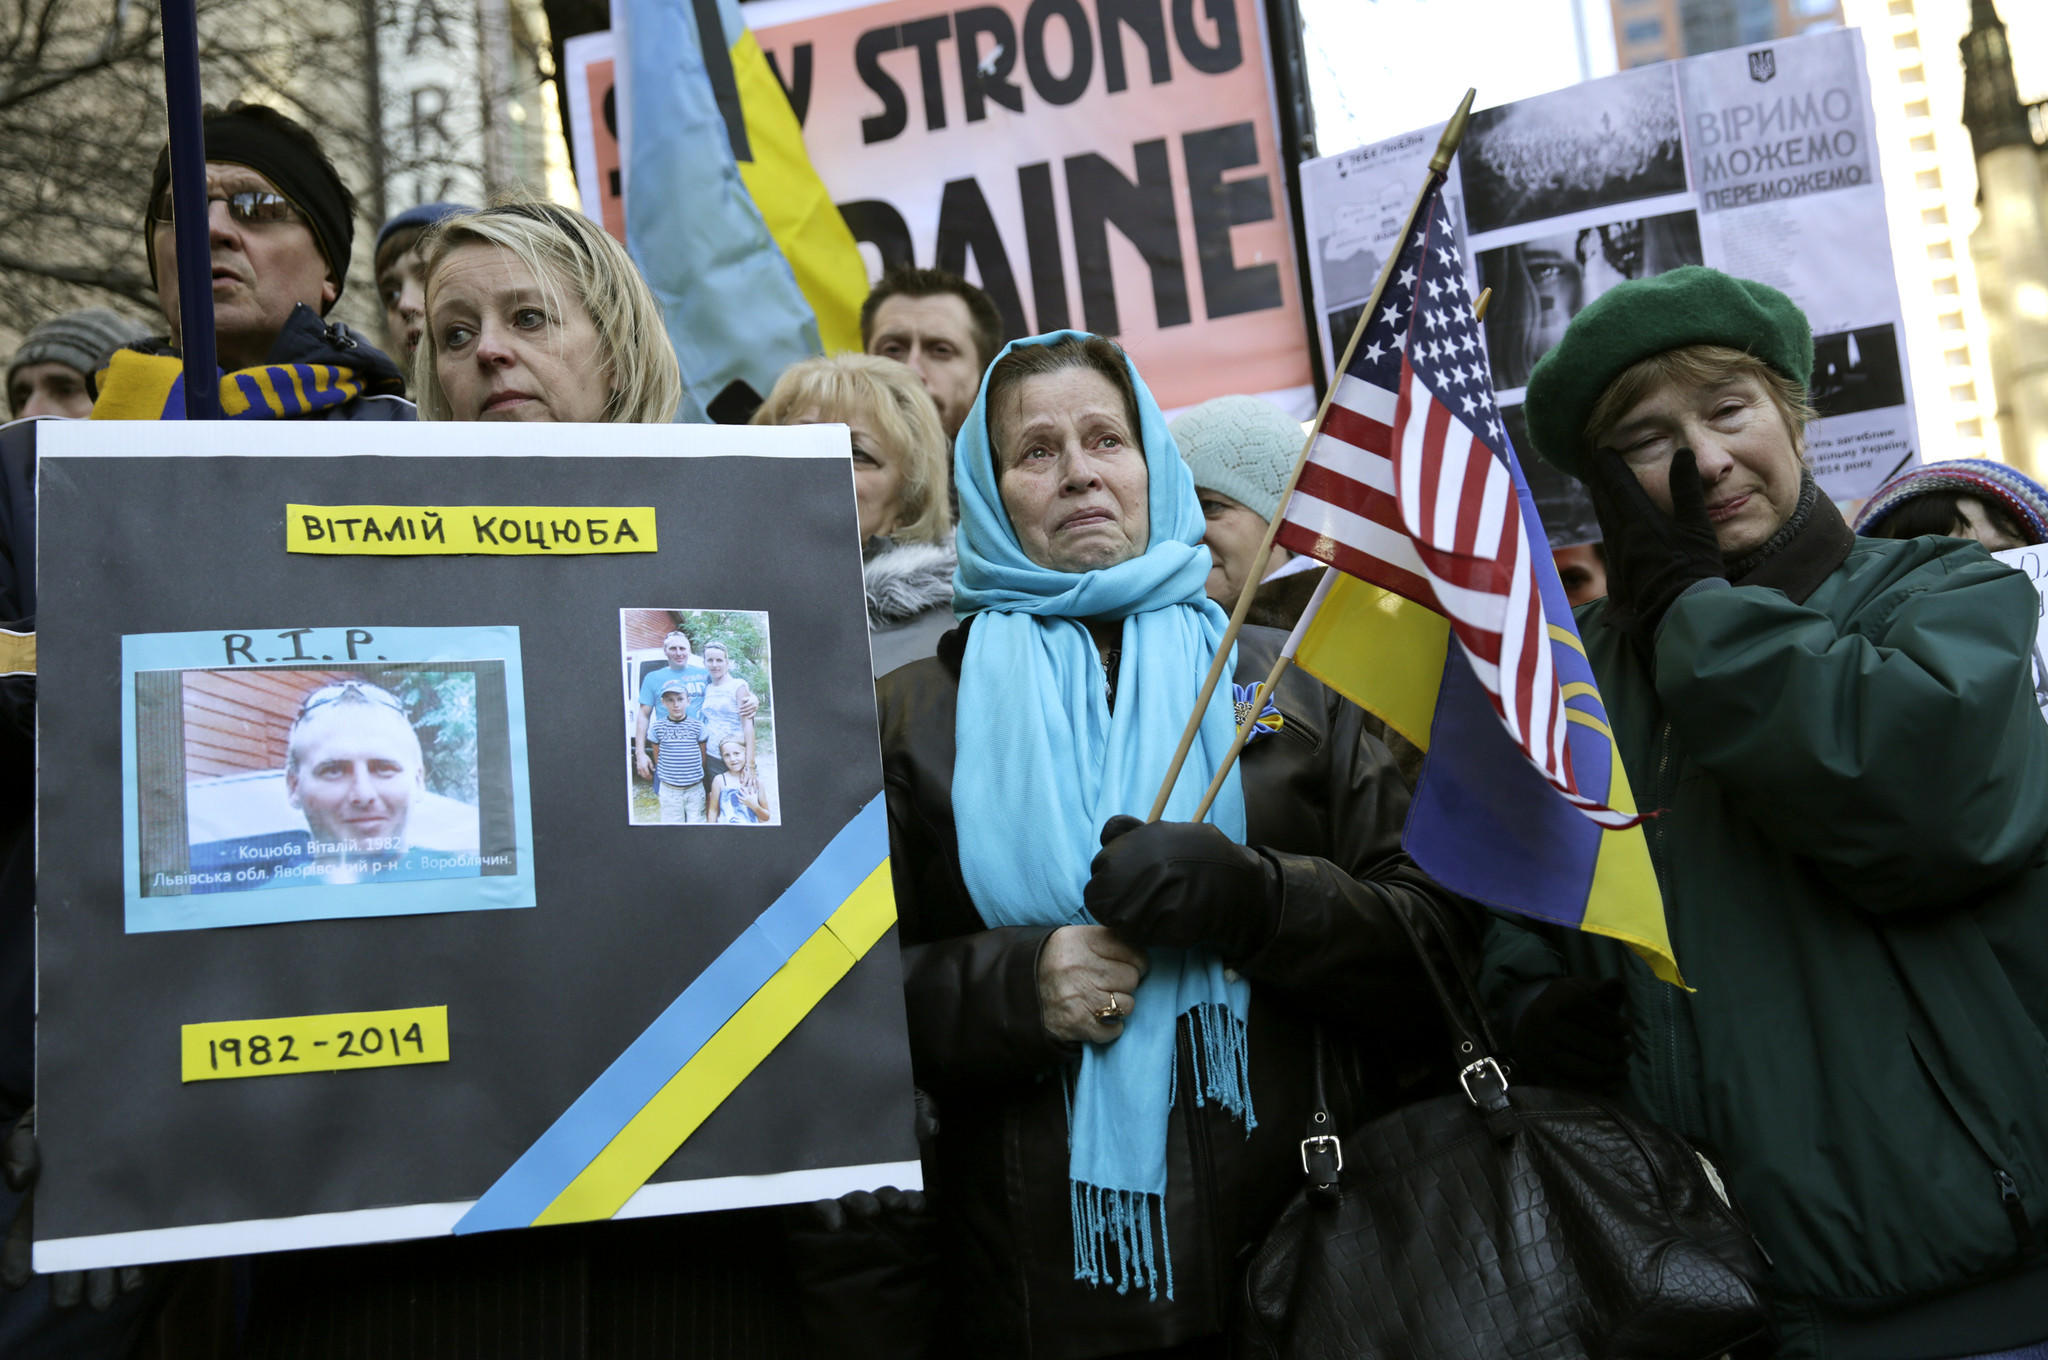 Irene Leseiko-Owerko, left, holds a poster of her cousin, Vitaliy Katsiuba, who was killed during protests in Kiev, as she stands with her mother-in-law Eleonora Owerko, center, and members of Chicago's Ukrainian community during a rally outside the Consulate General of the Ukraine.